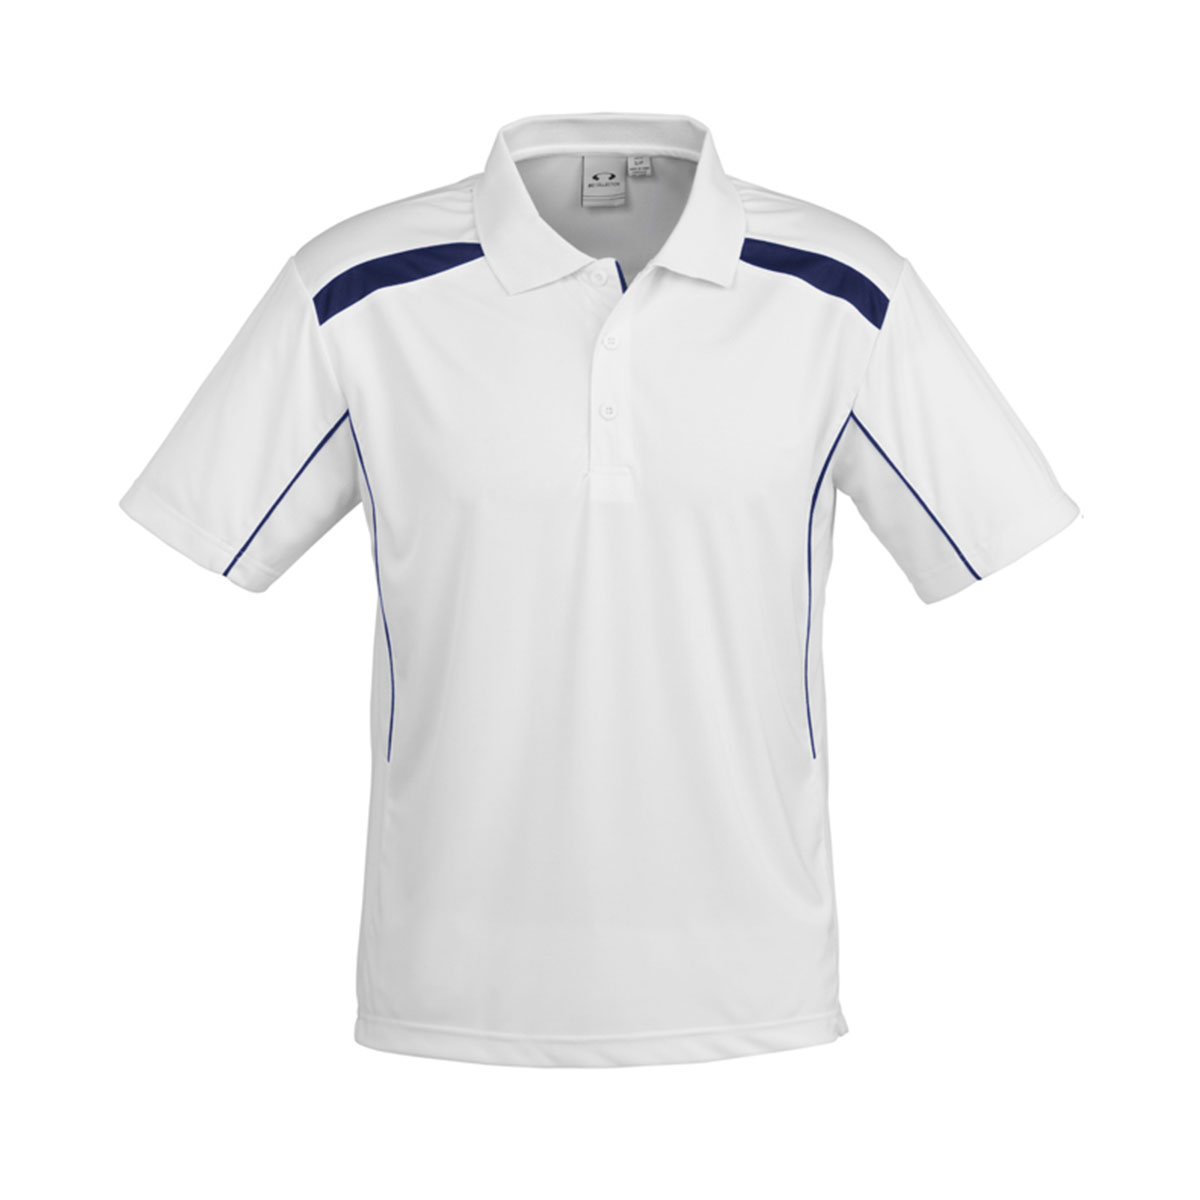 Mens United Short Sleeve Polo-White / Navy